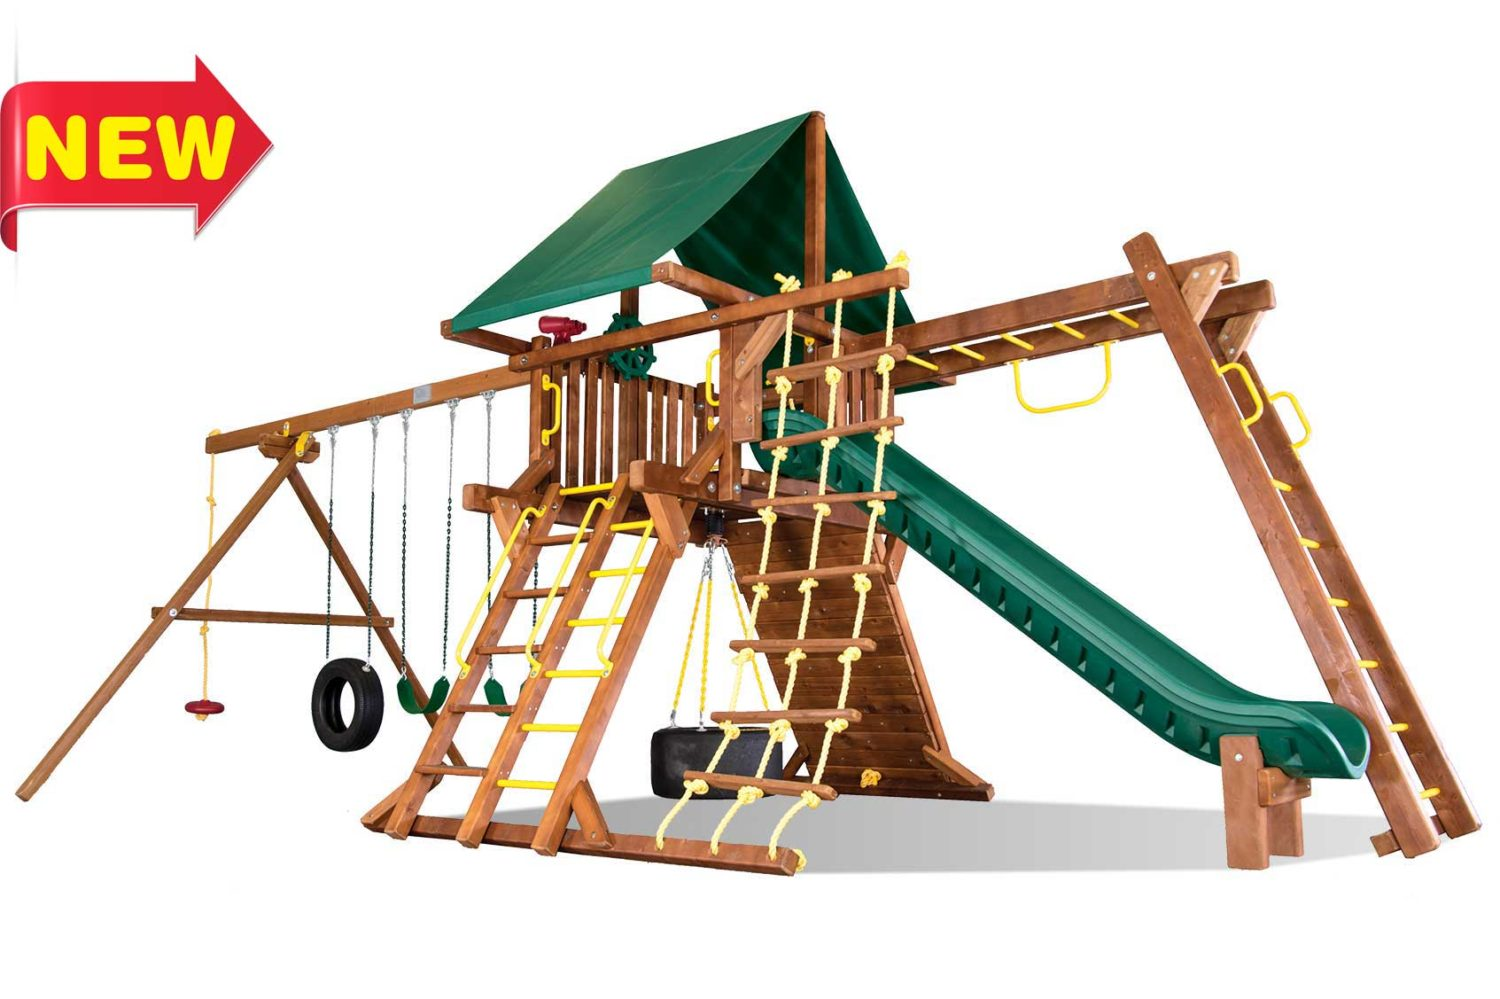 Sunshine Super Turbo Castle Pkg III Wooden Swing Set